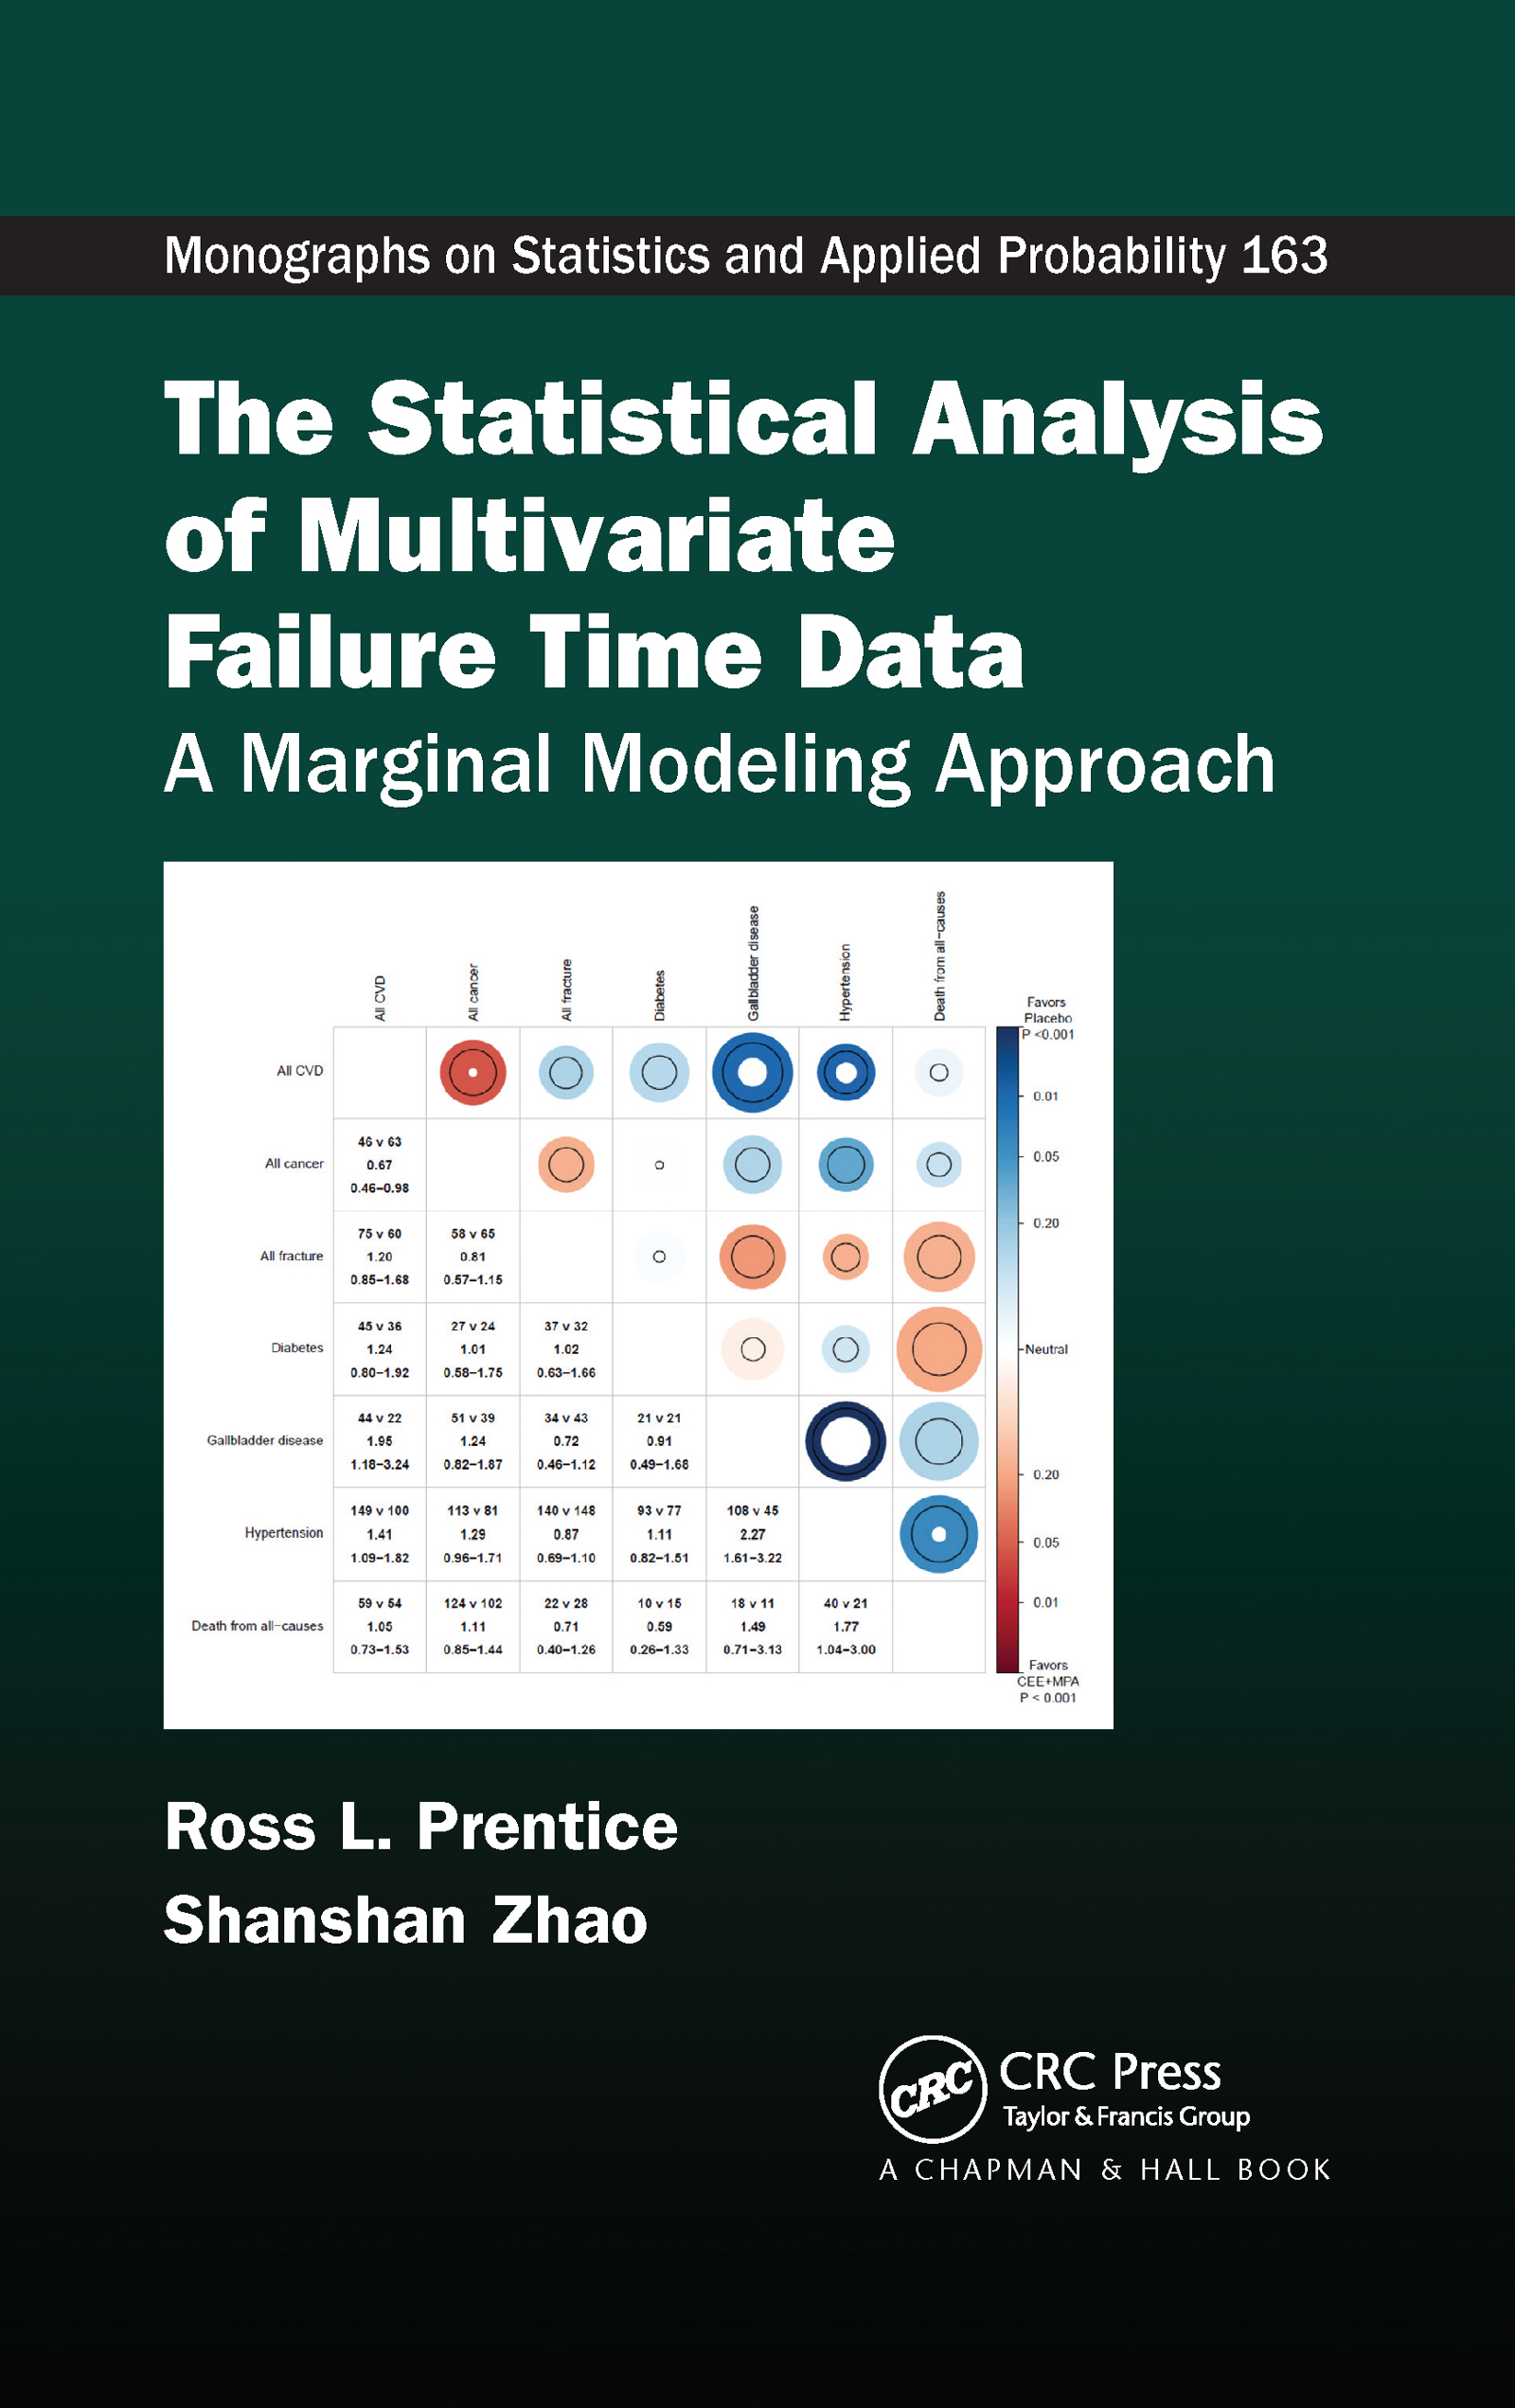 The Statistical Analysis of Multivariate Failure Time Data